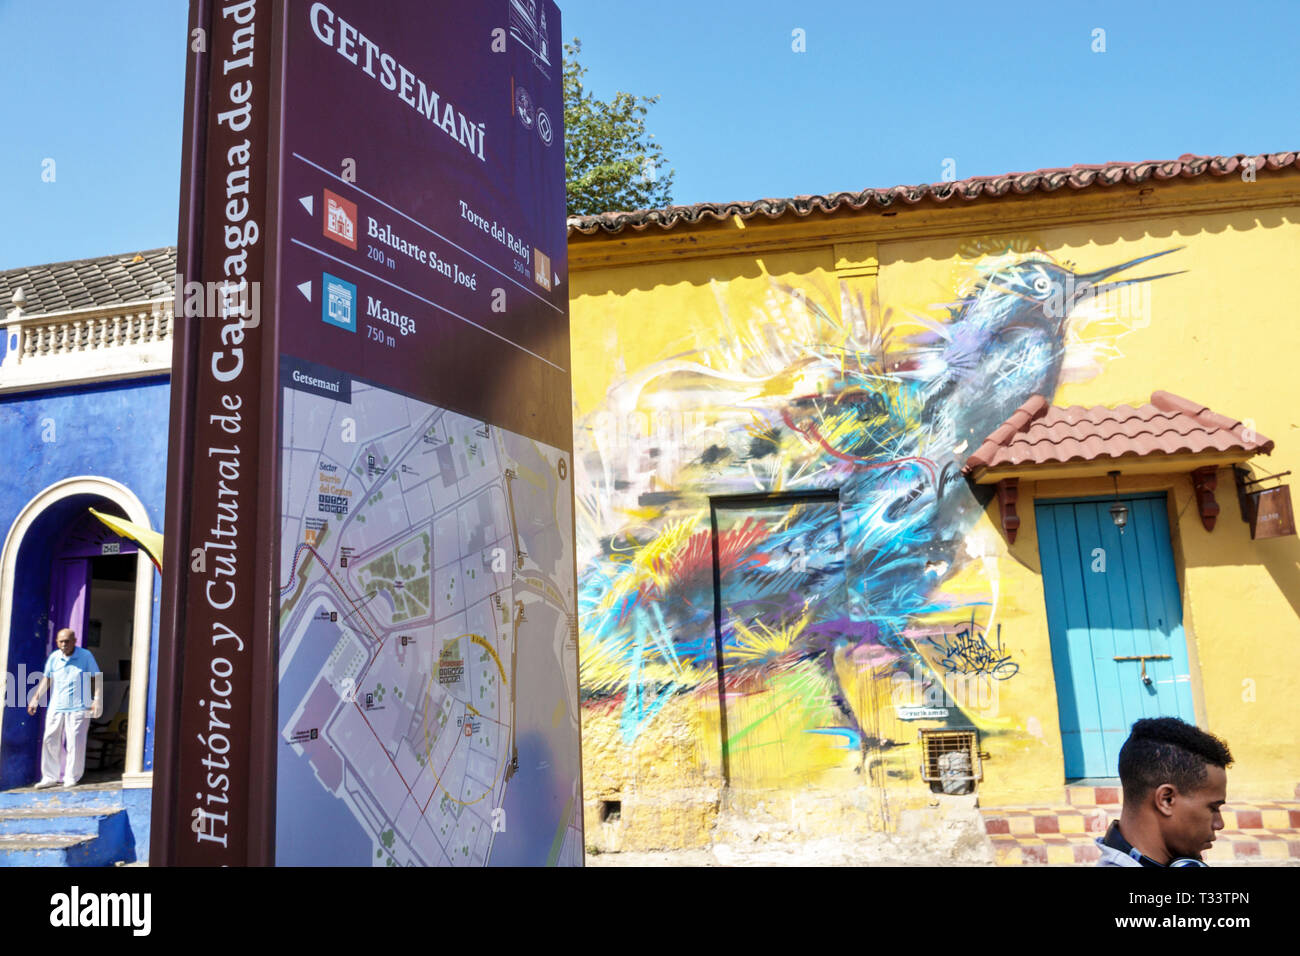 Cartagena Colombia Old Walled City Center centre Getsemani sign information neighborhood map directions wall mural - Stock Image